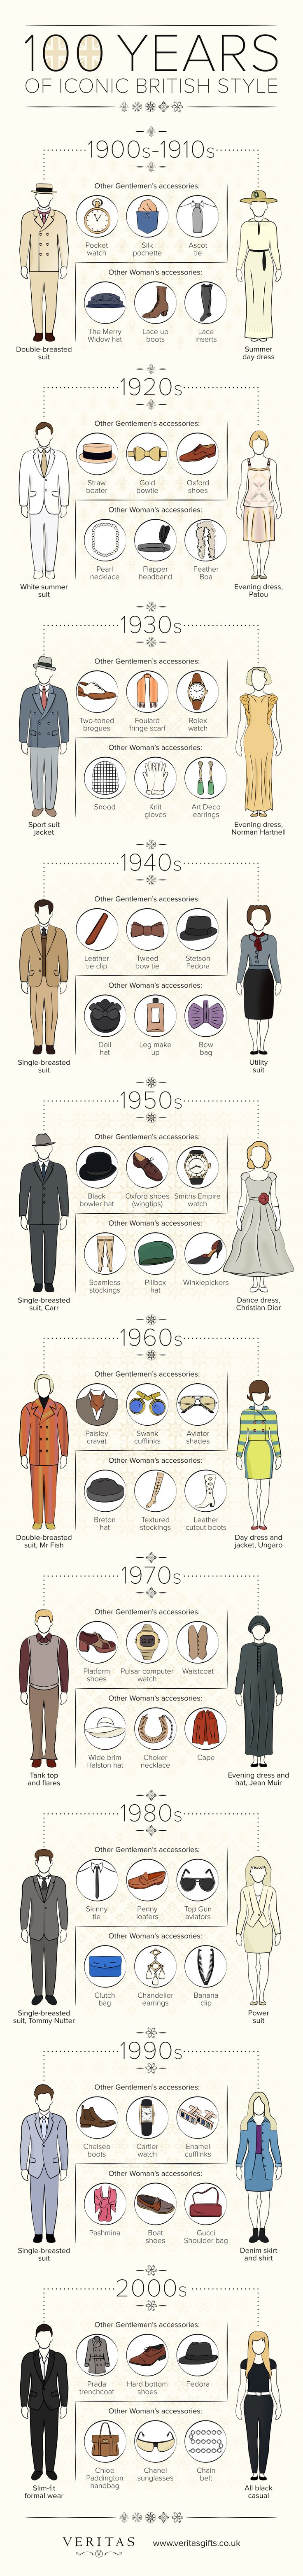 100 Years of Iconic British Style